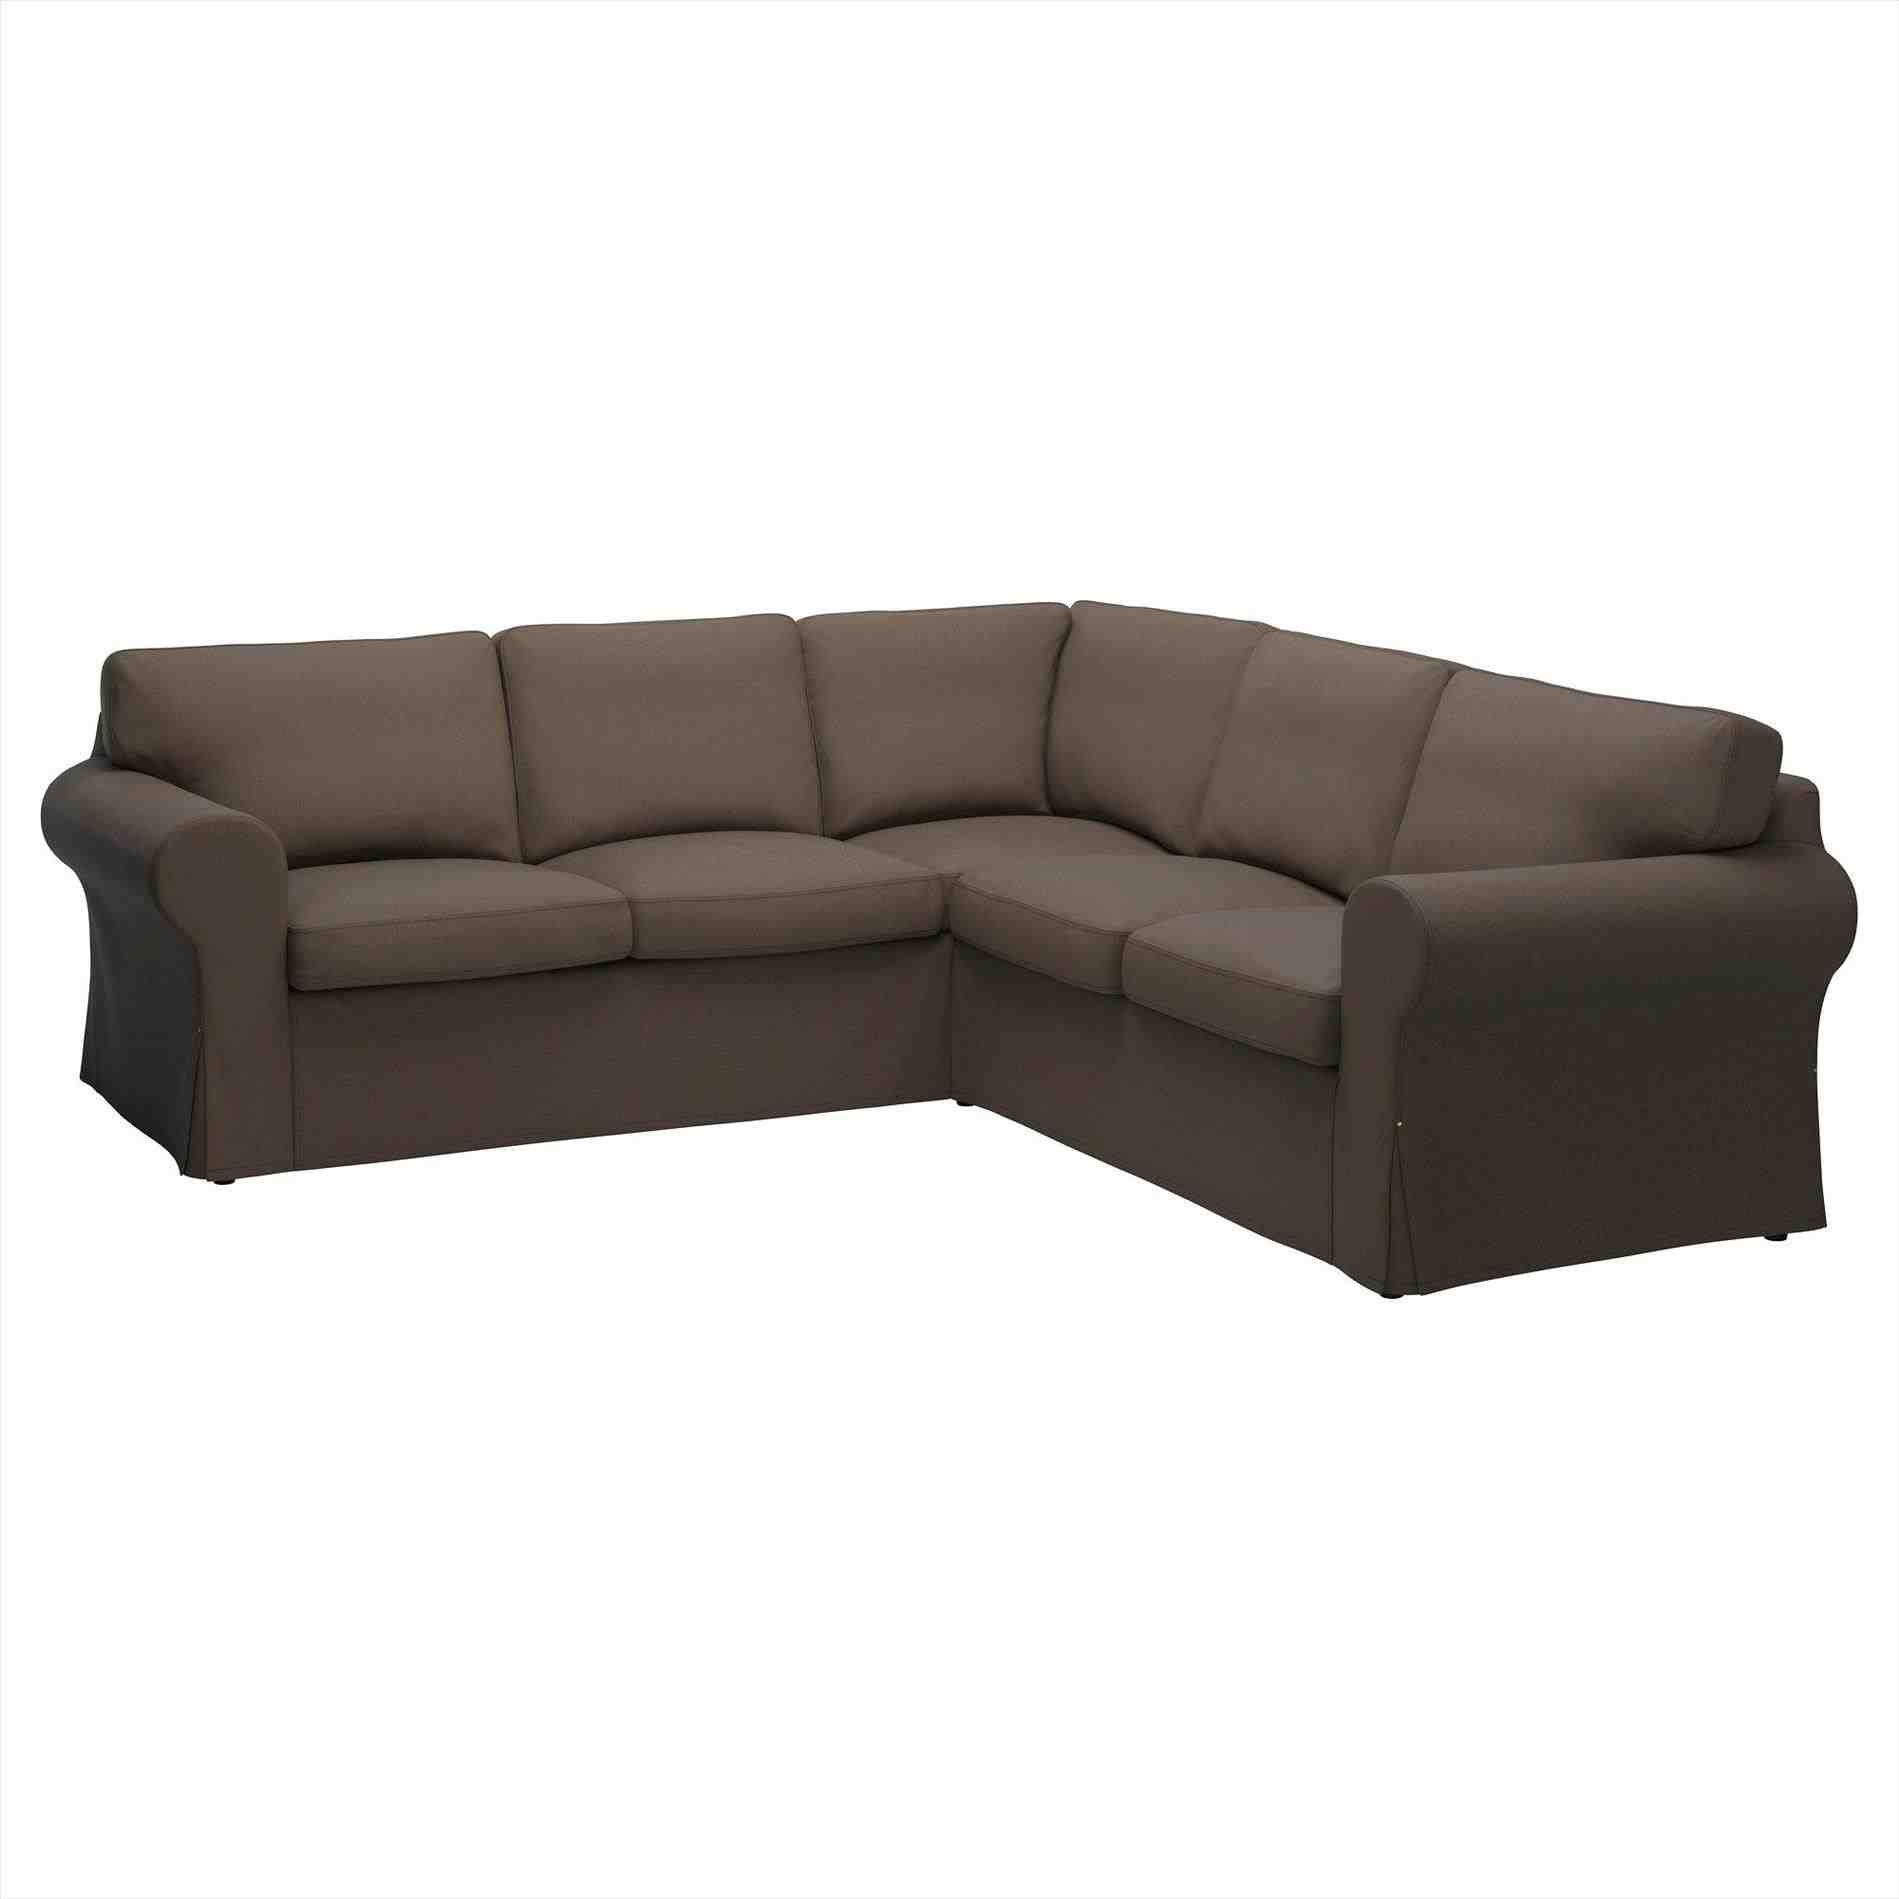 Cool Cheap Sofa Bed Philippines Sofa Set For Philippines Home Download Free Architecture Designs Boapuretrmadebymaigaardcom